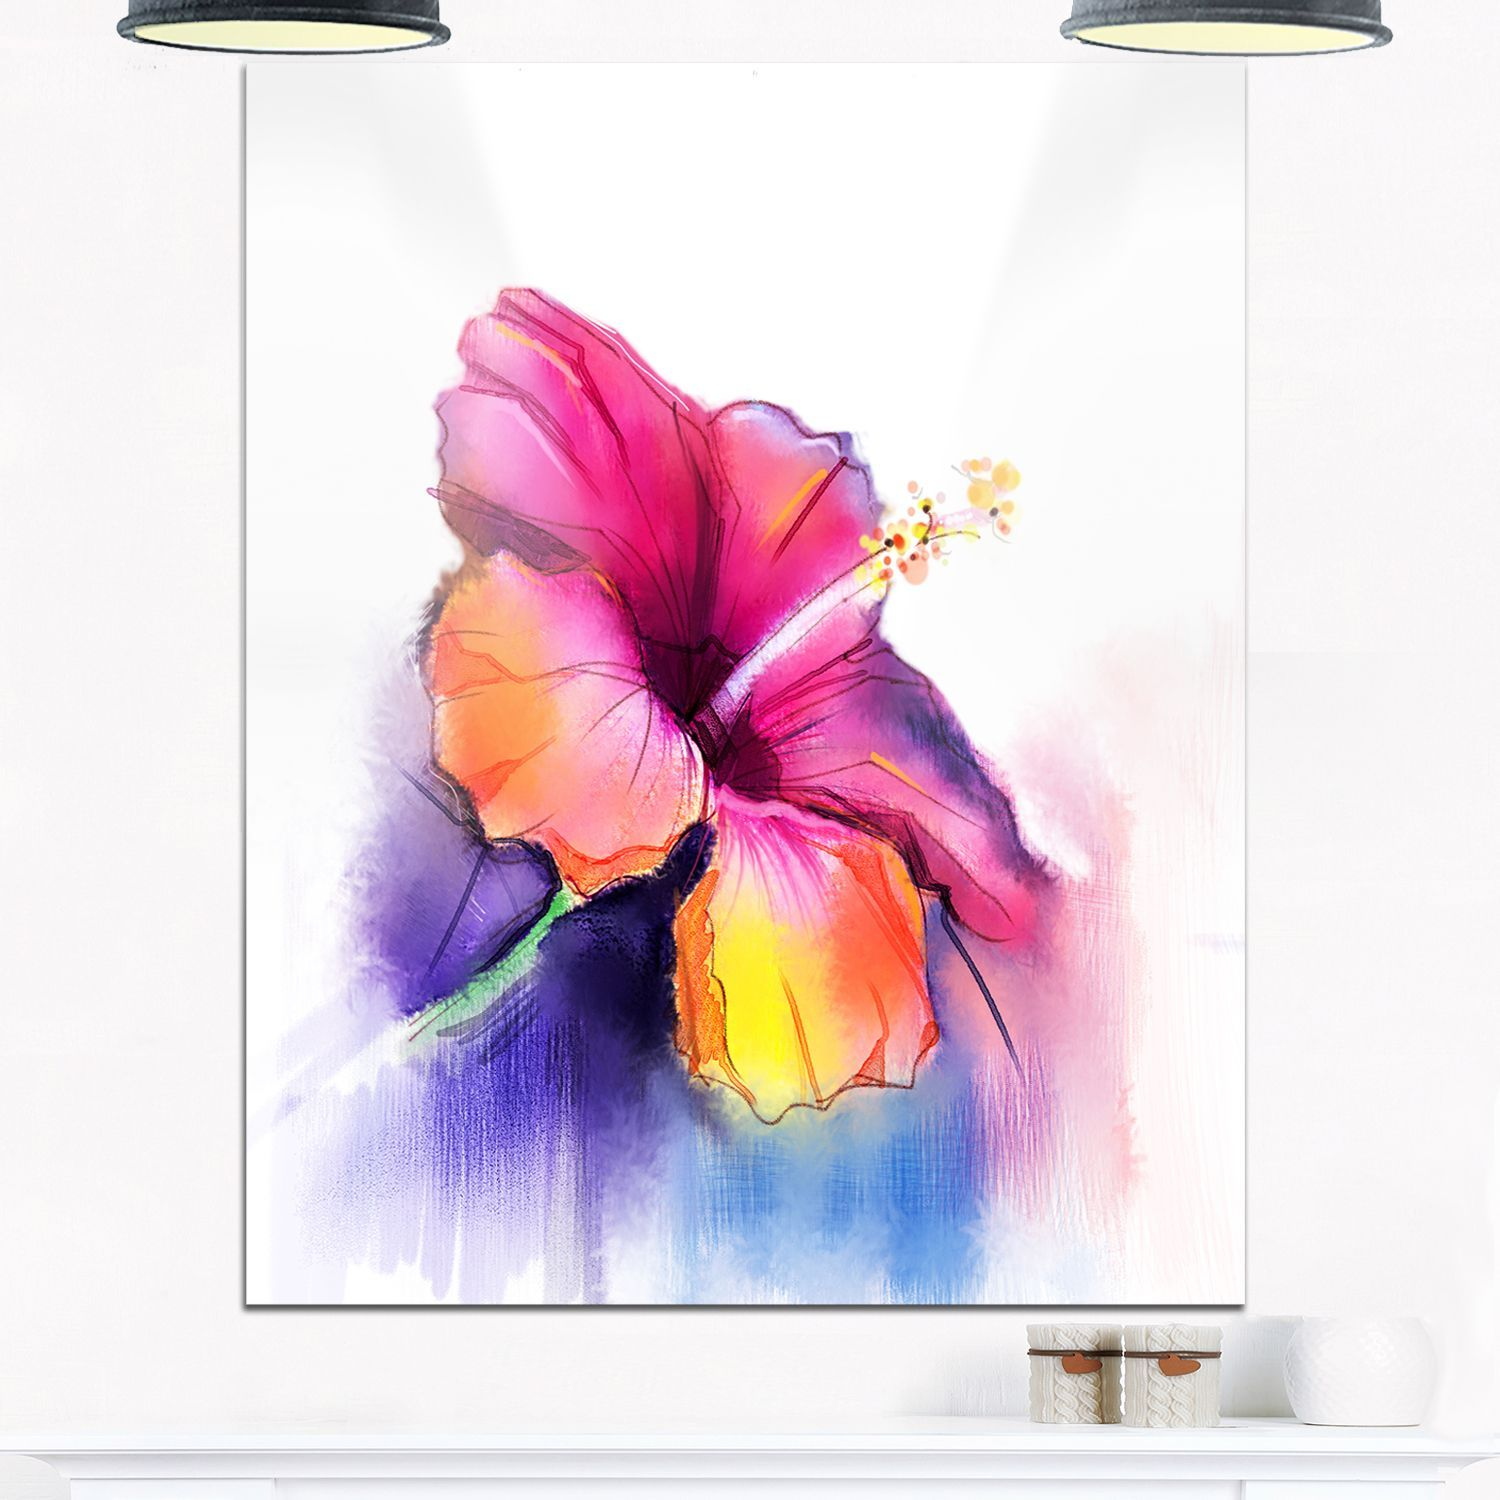 Yellow hibiscus flower in blue flower glossy metal wall art overstock online shopping bedding furniture electronics jewelry clothing more hibiscus flower izmirmasajfo Images